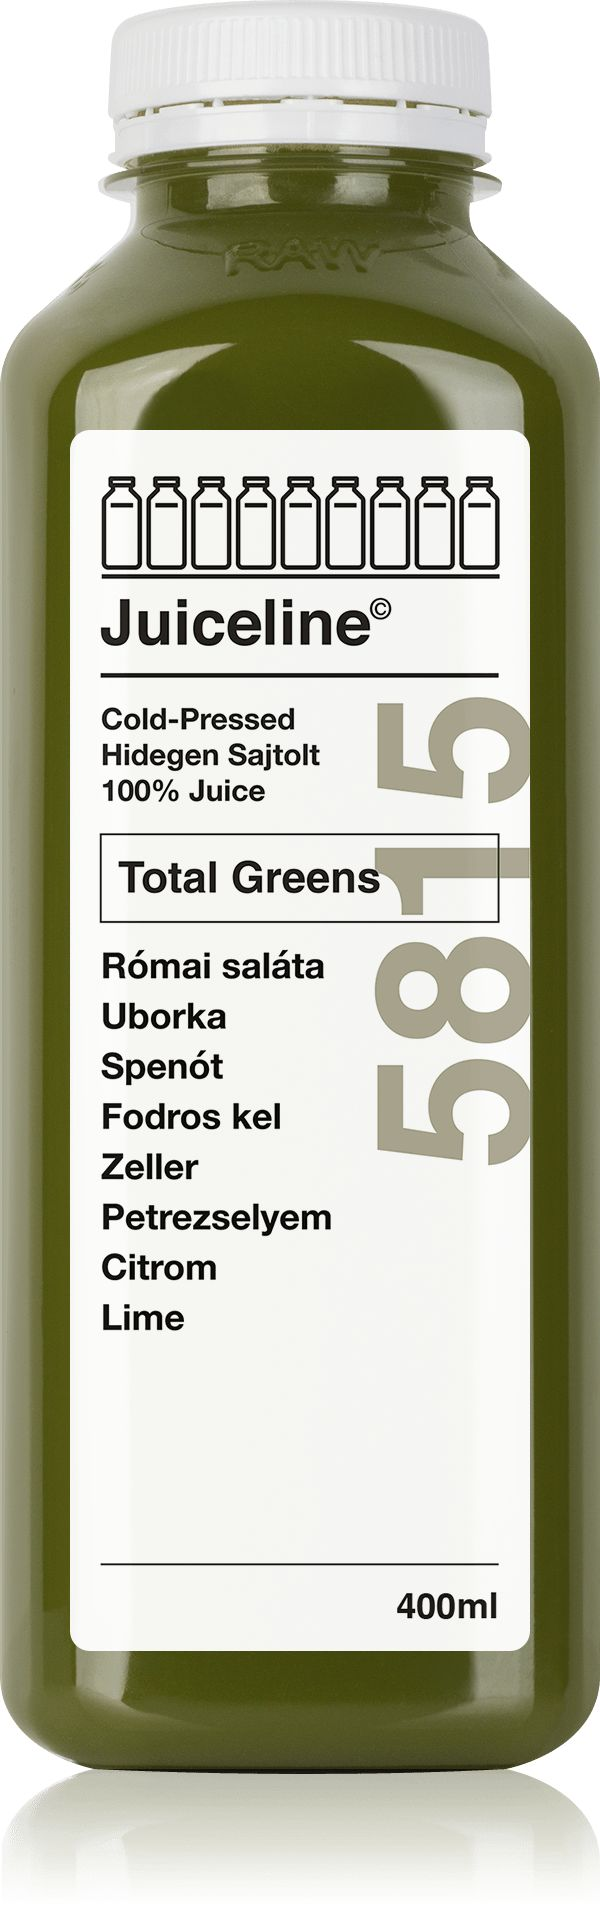 5815 Total Greens 400ml